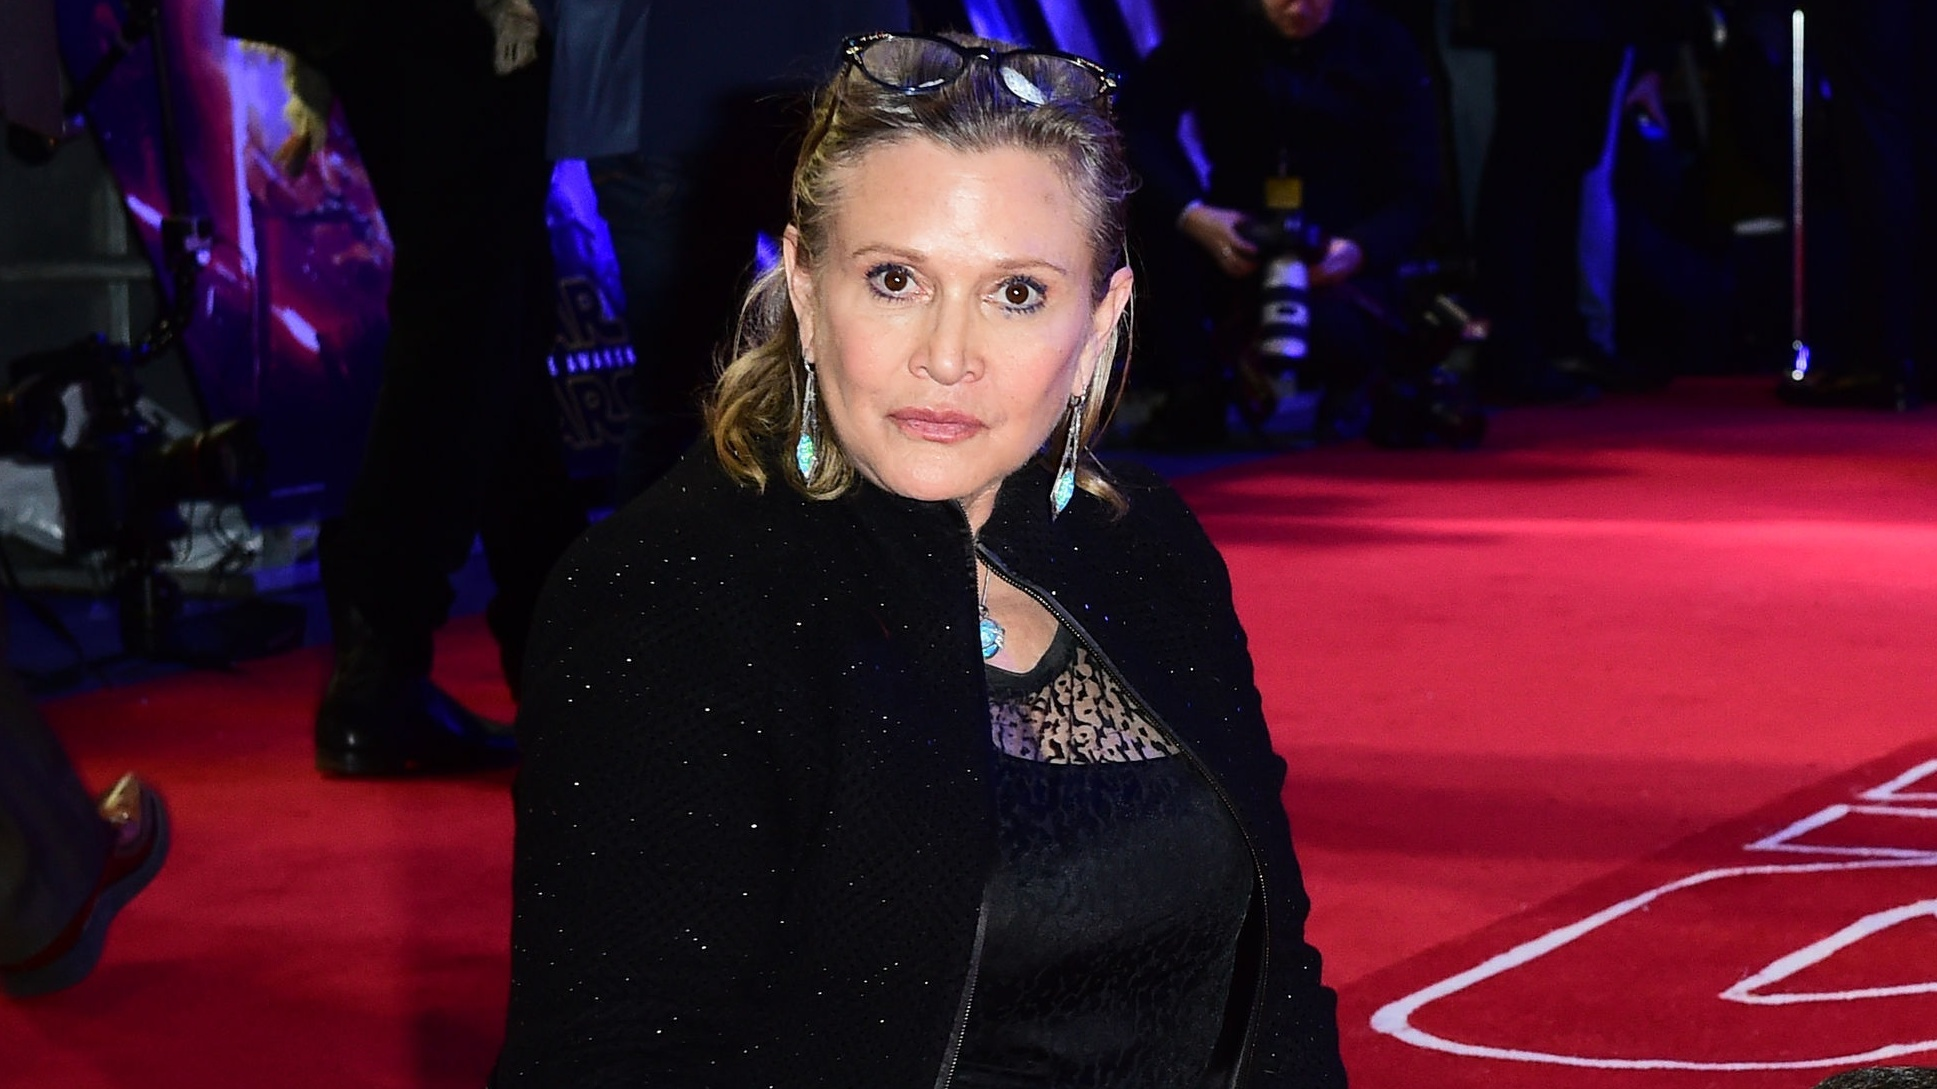 Carrie Fisher took part in a midnight ceilidh at Dundee railway station